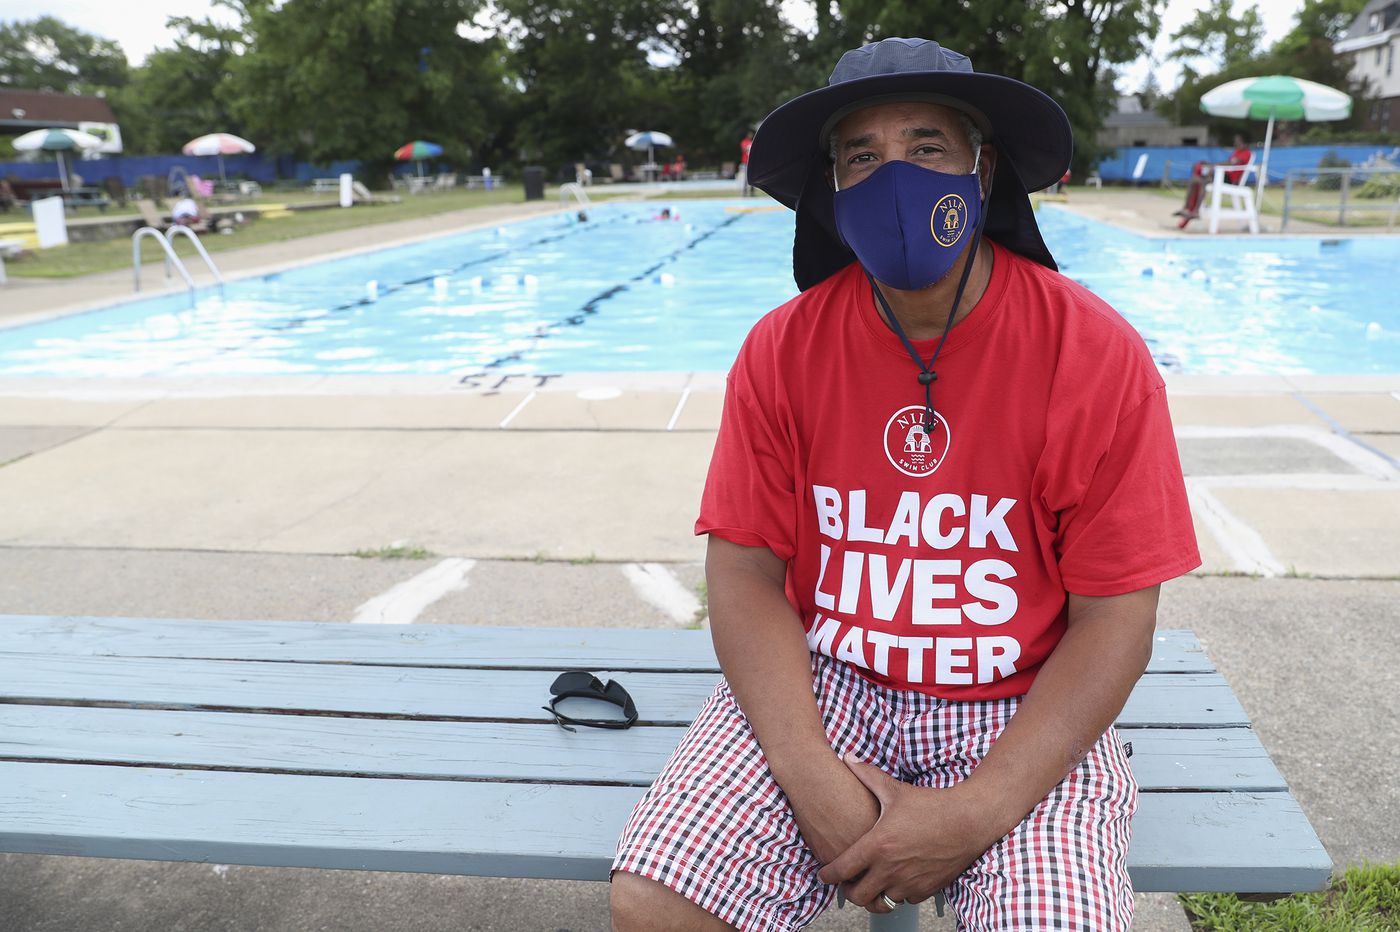 Nile Swim Club in Yeadon Keeps Going, Even in a Pandemic